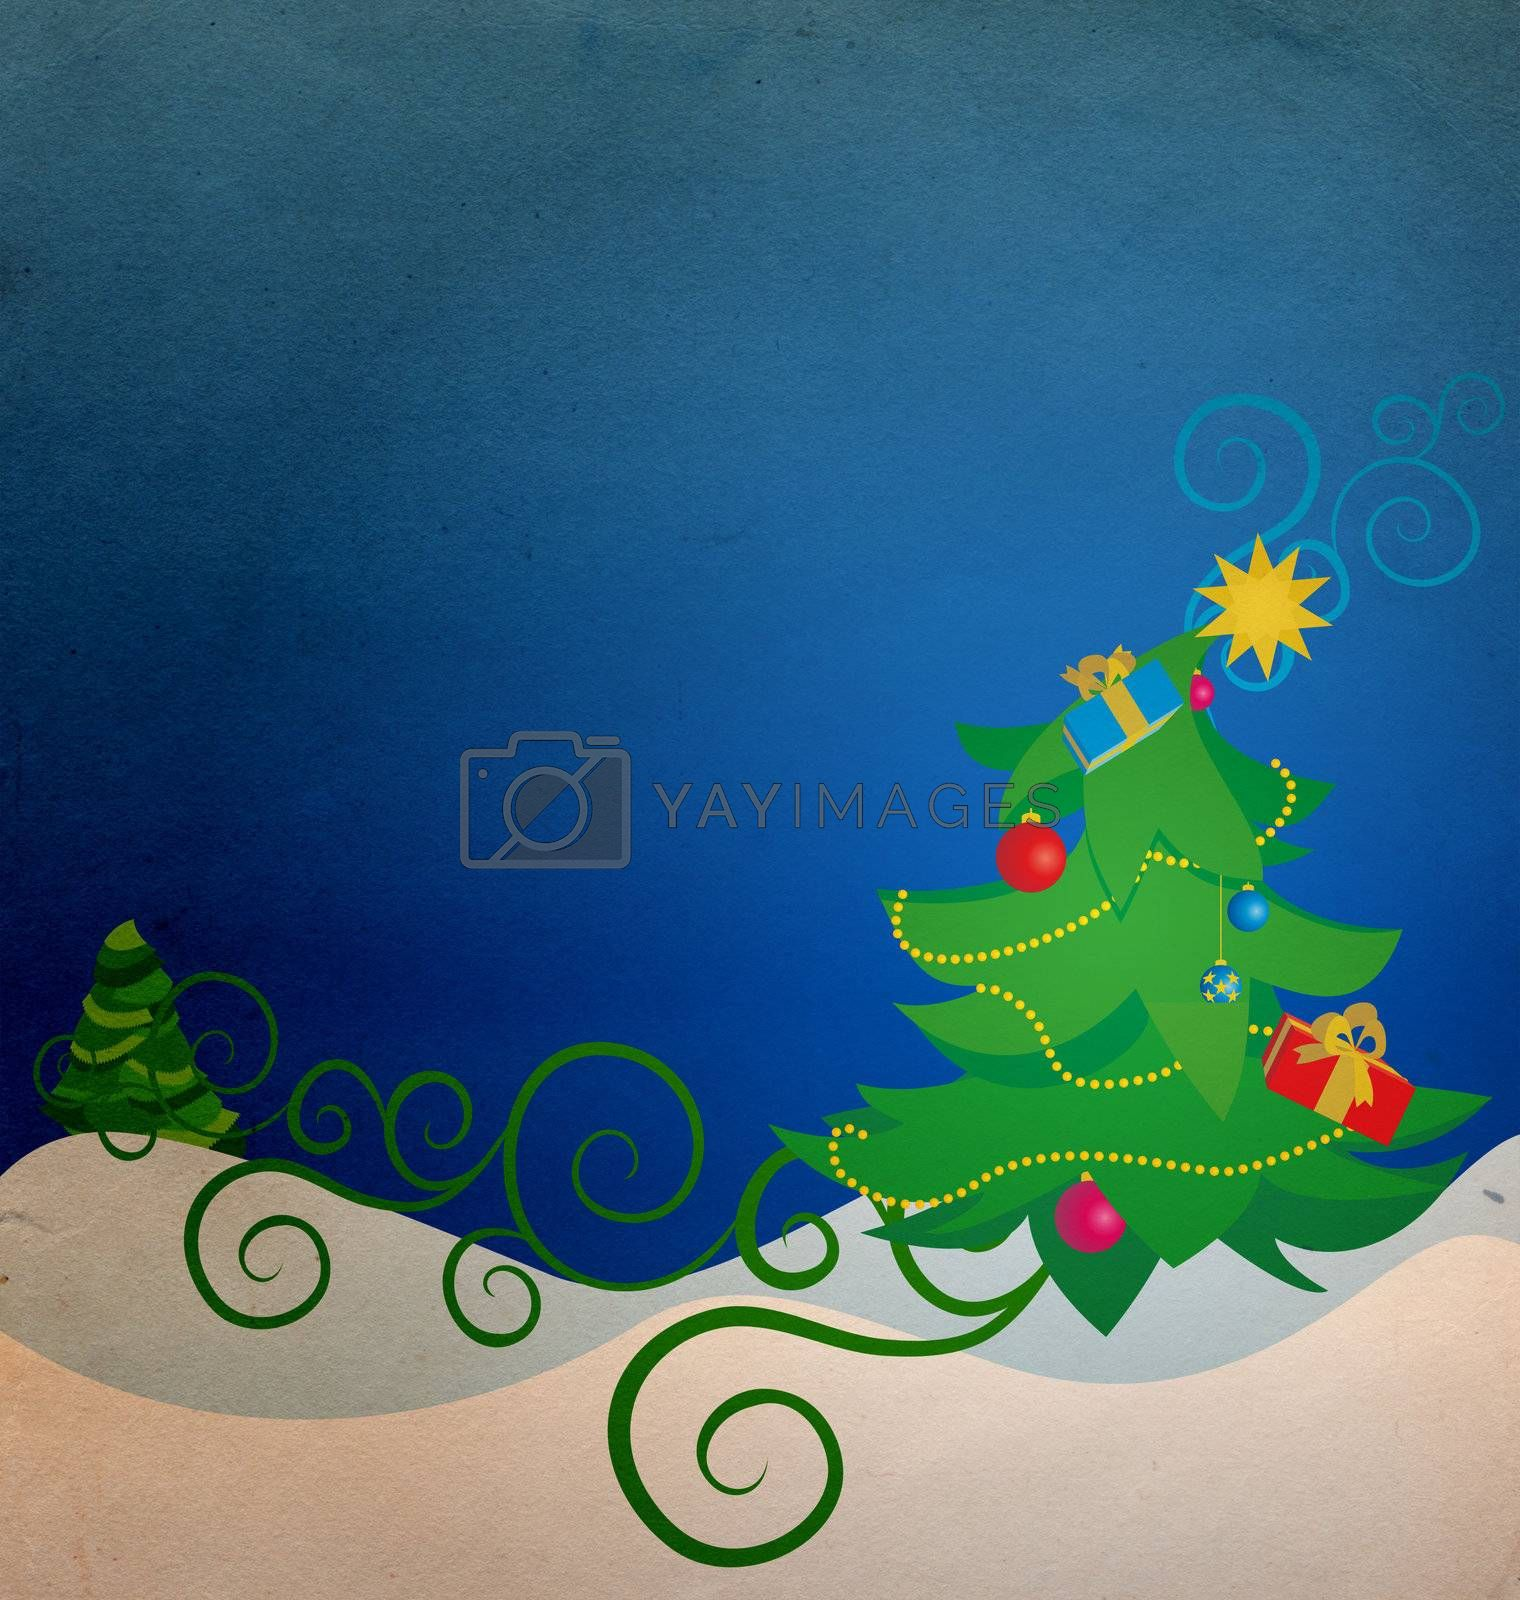 vintage christmas tree with gift boxes illustration